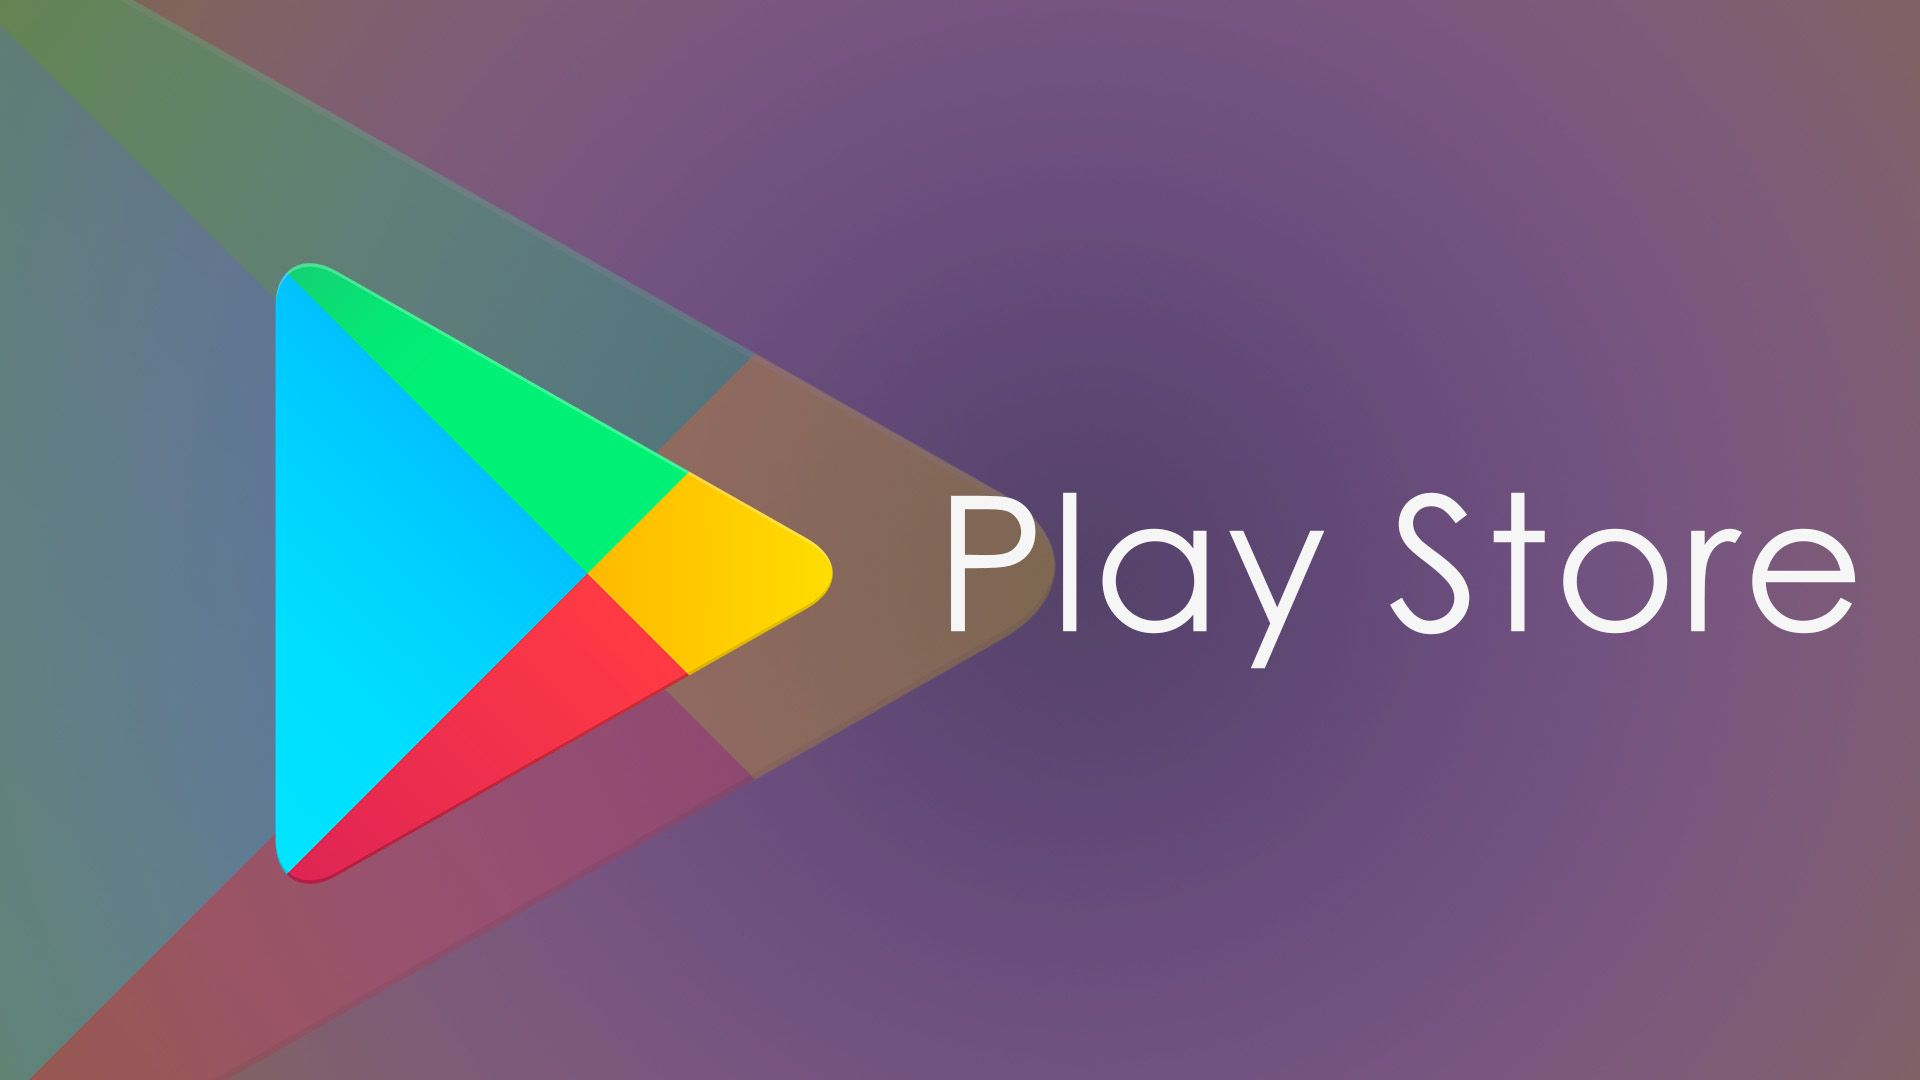 Google Play Store's latest redesign